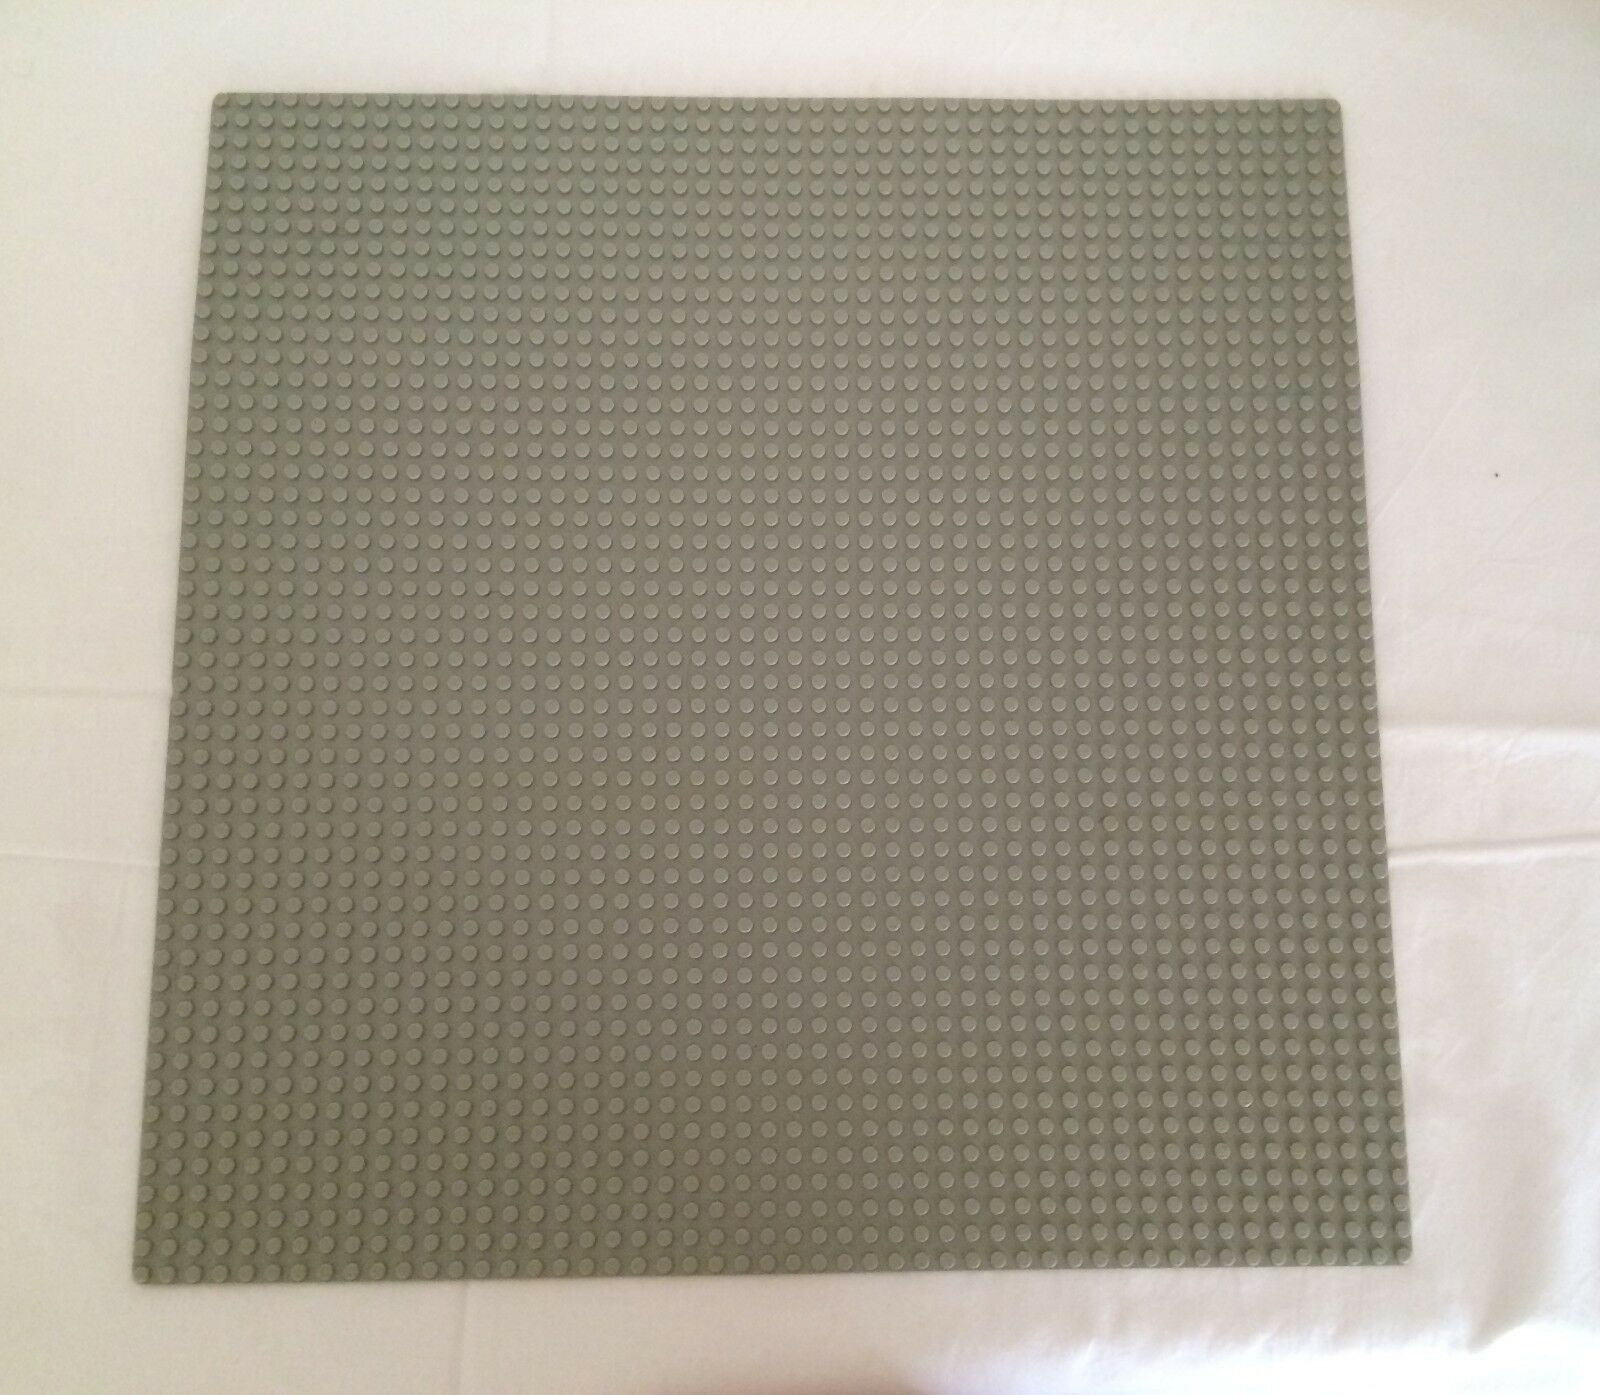 LEGO® CLASSIC SAMSONITE 079-1 GIANT BASE BASE BASE PLATE 50 X 50 STUDS LIGHT GREY 40X40cm 0980de